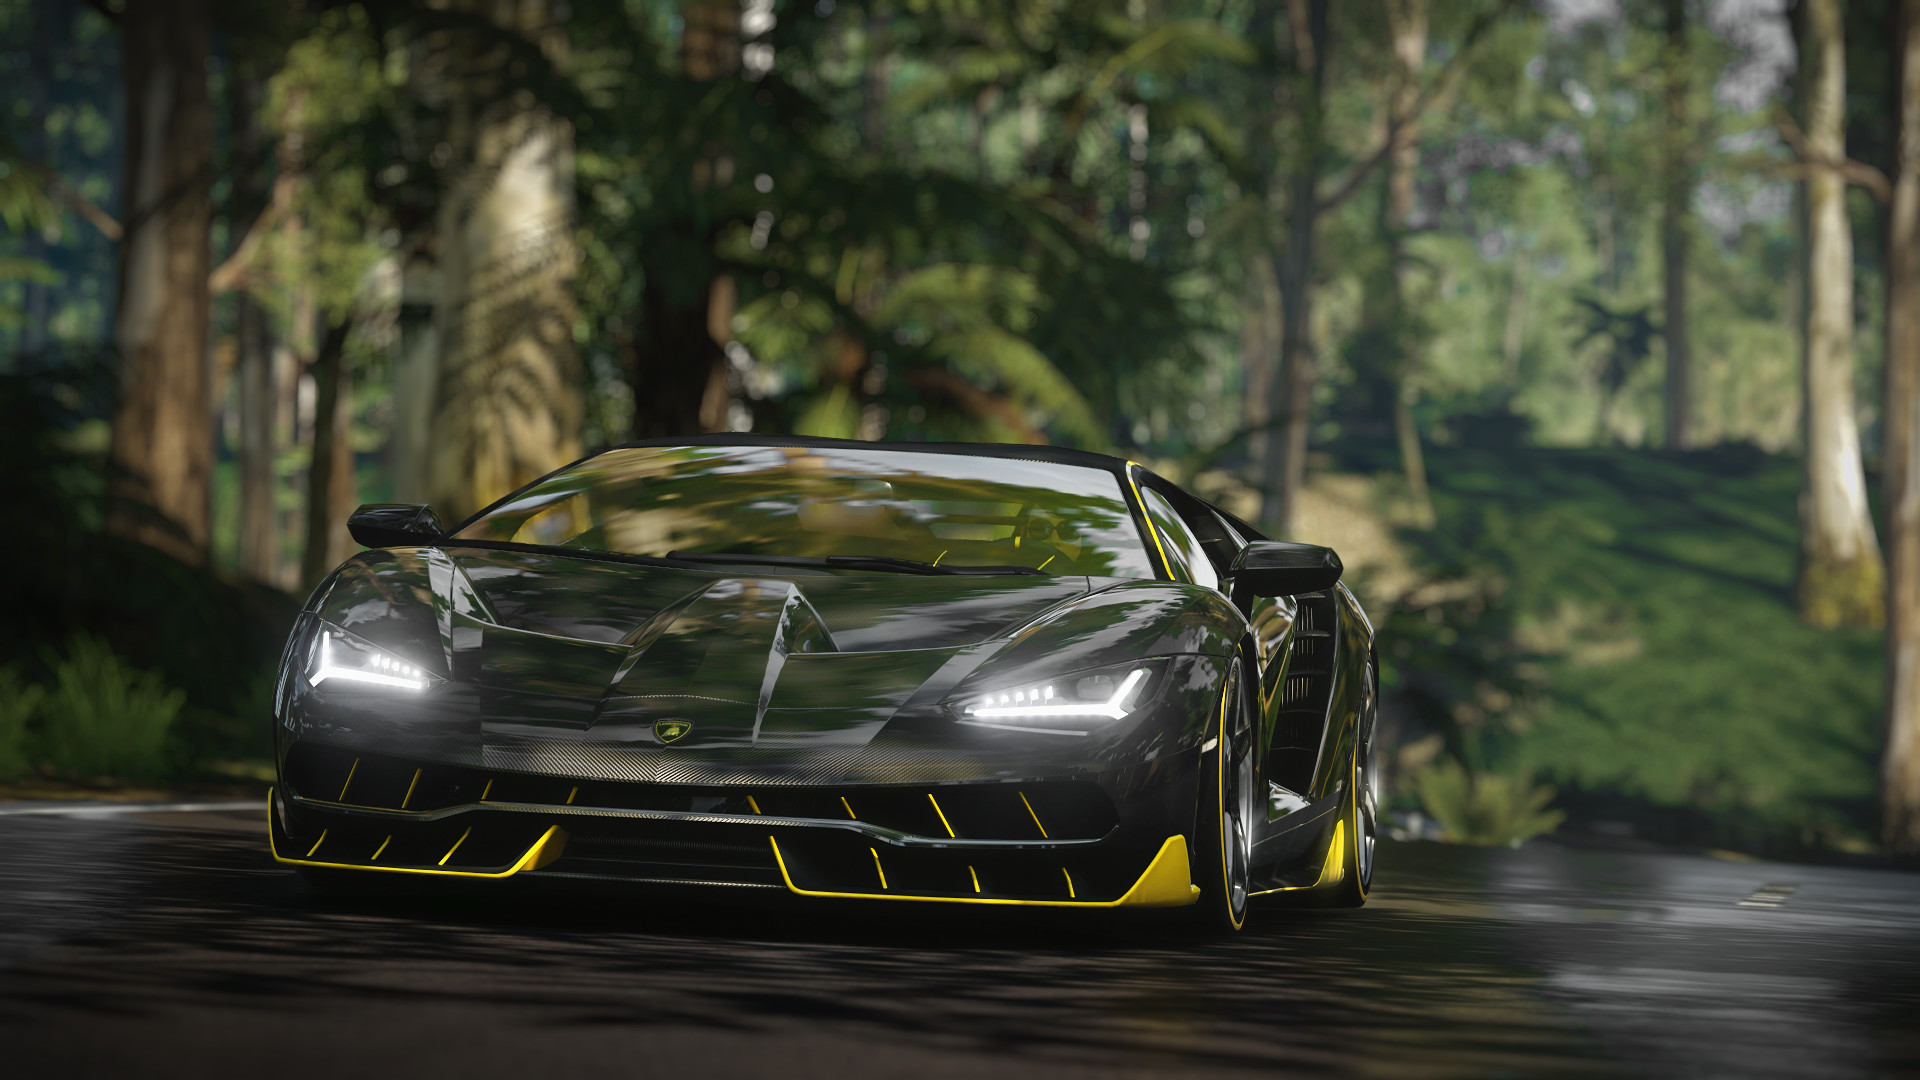 Imagenes De Coches Hd: Forza Horizon 3 Wallpapers, Pictures, Images